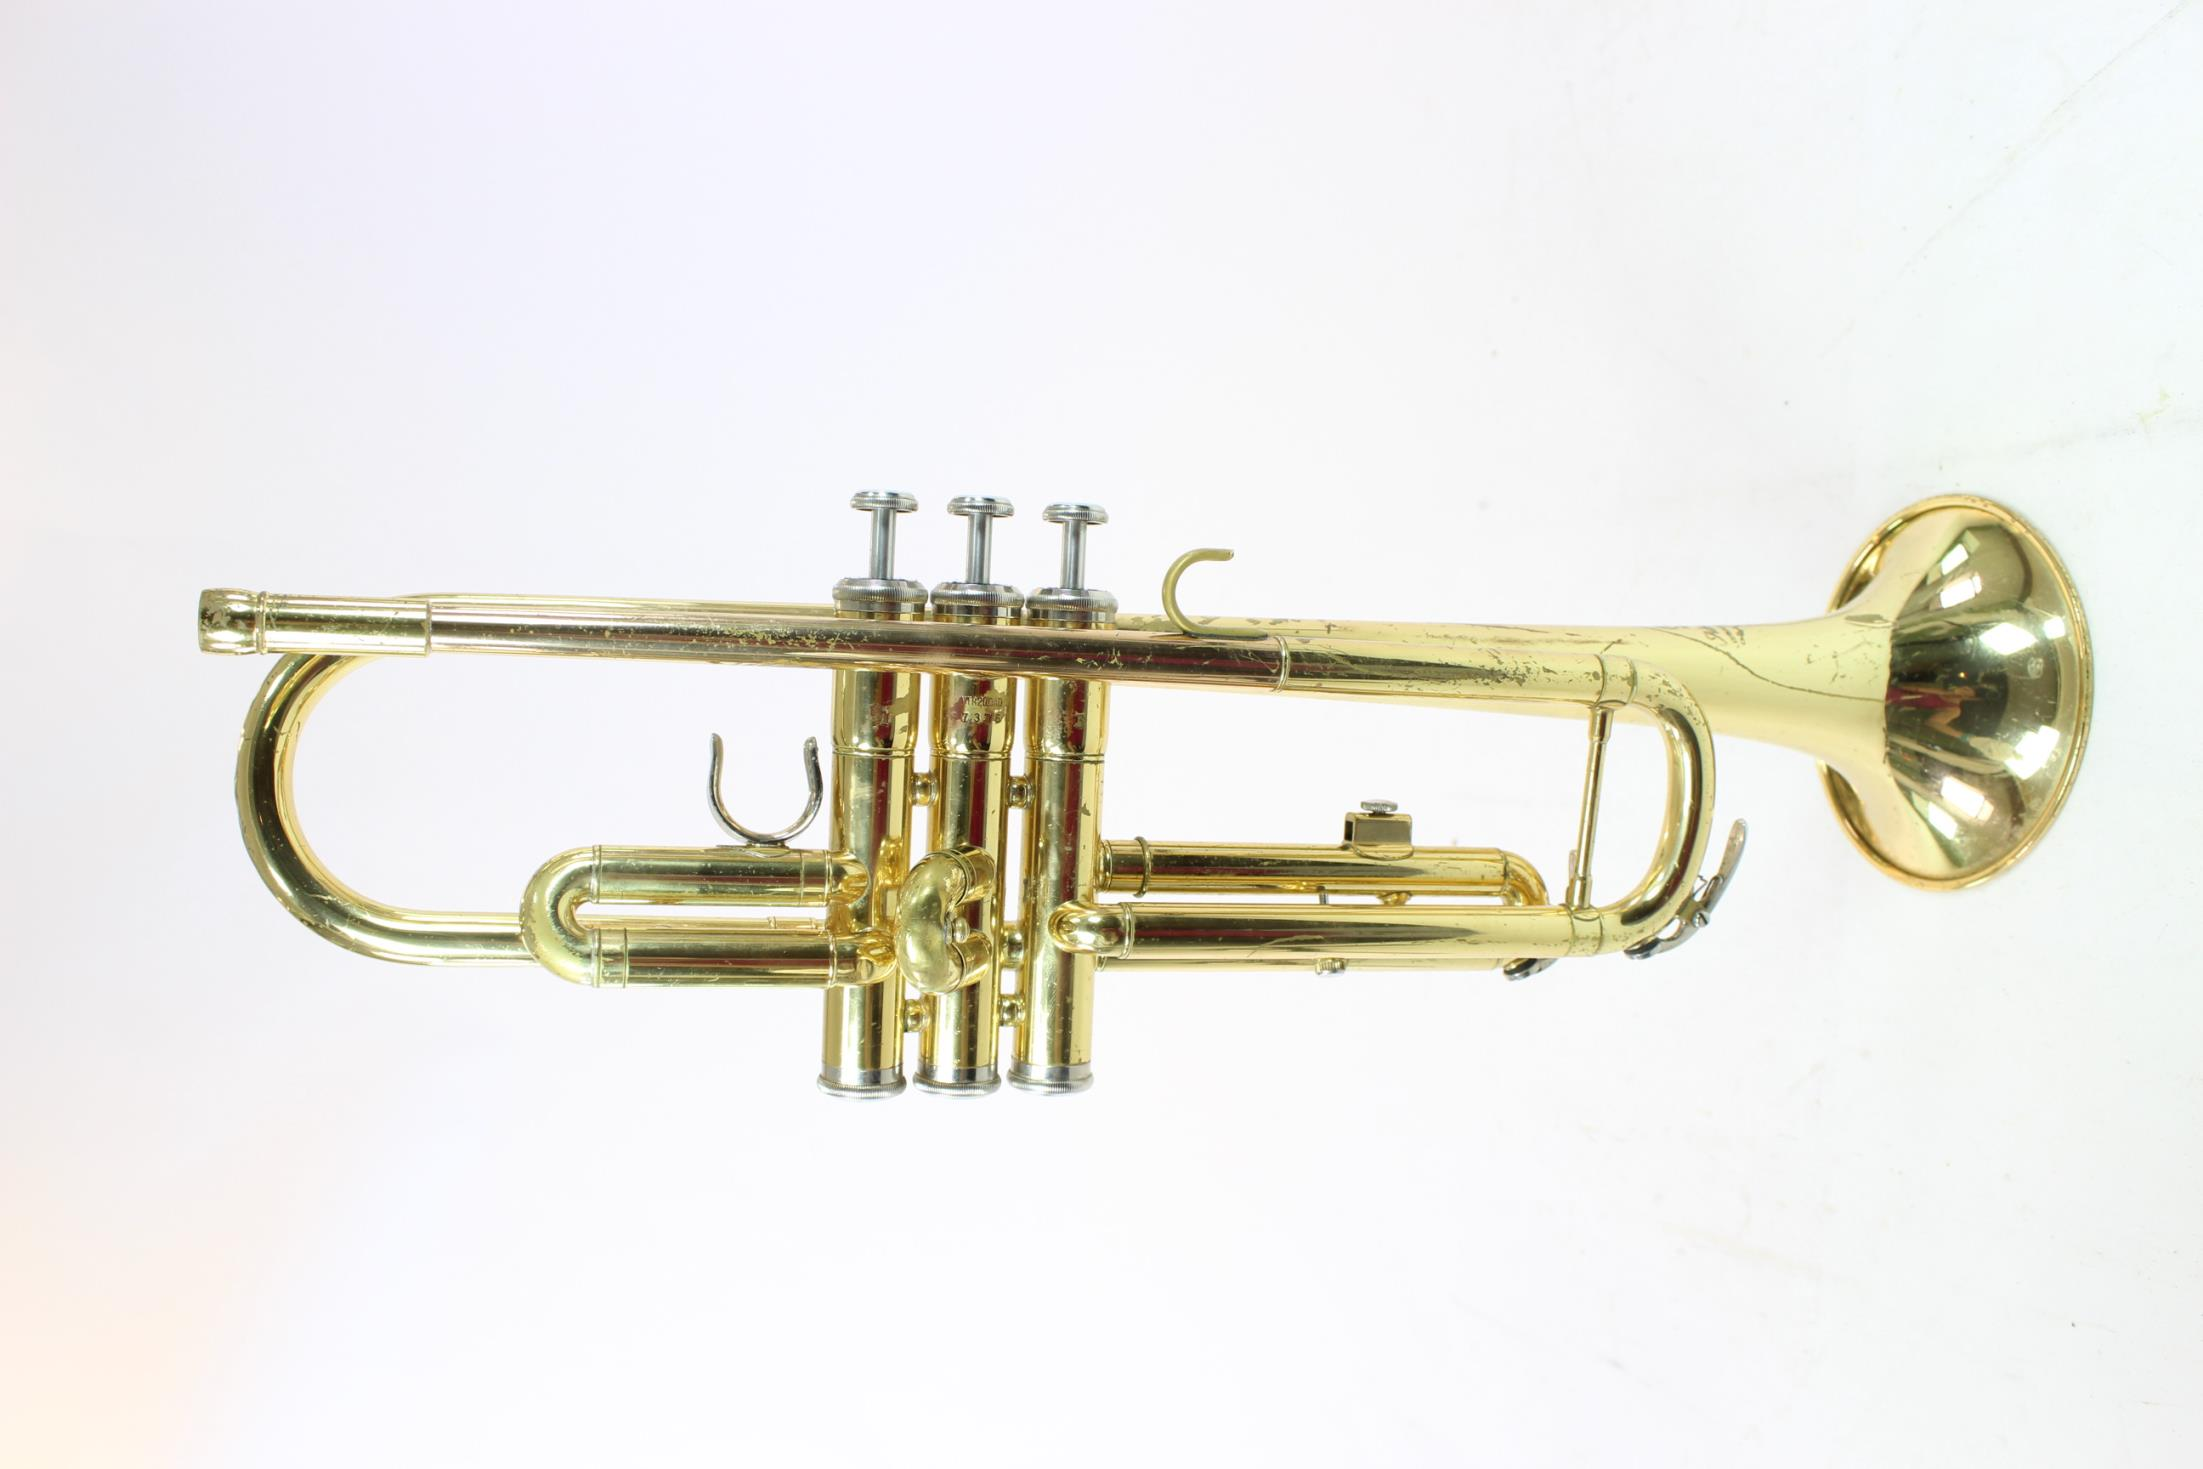 Yamaha ytr 200ad advantage model student trumpet very nice for Yamaha student trumpets